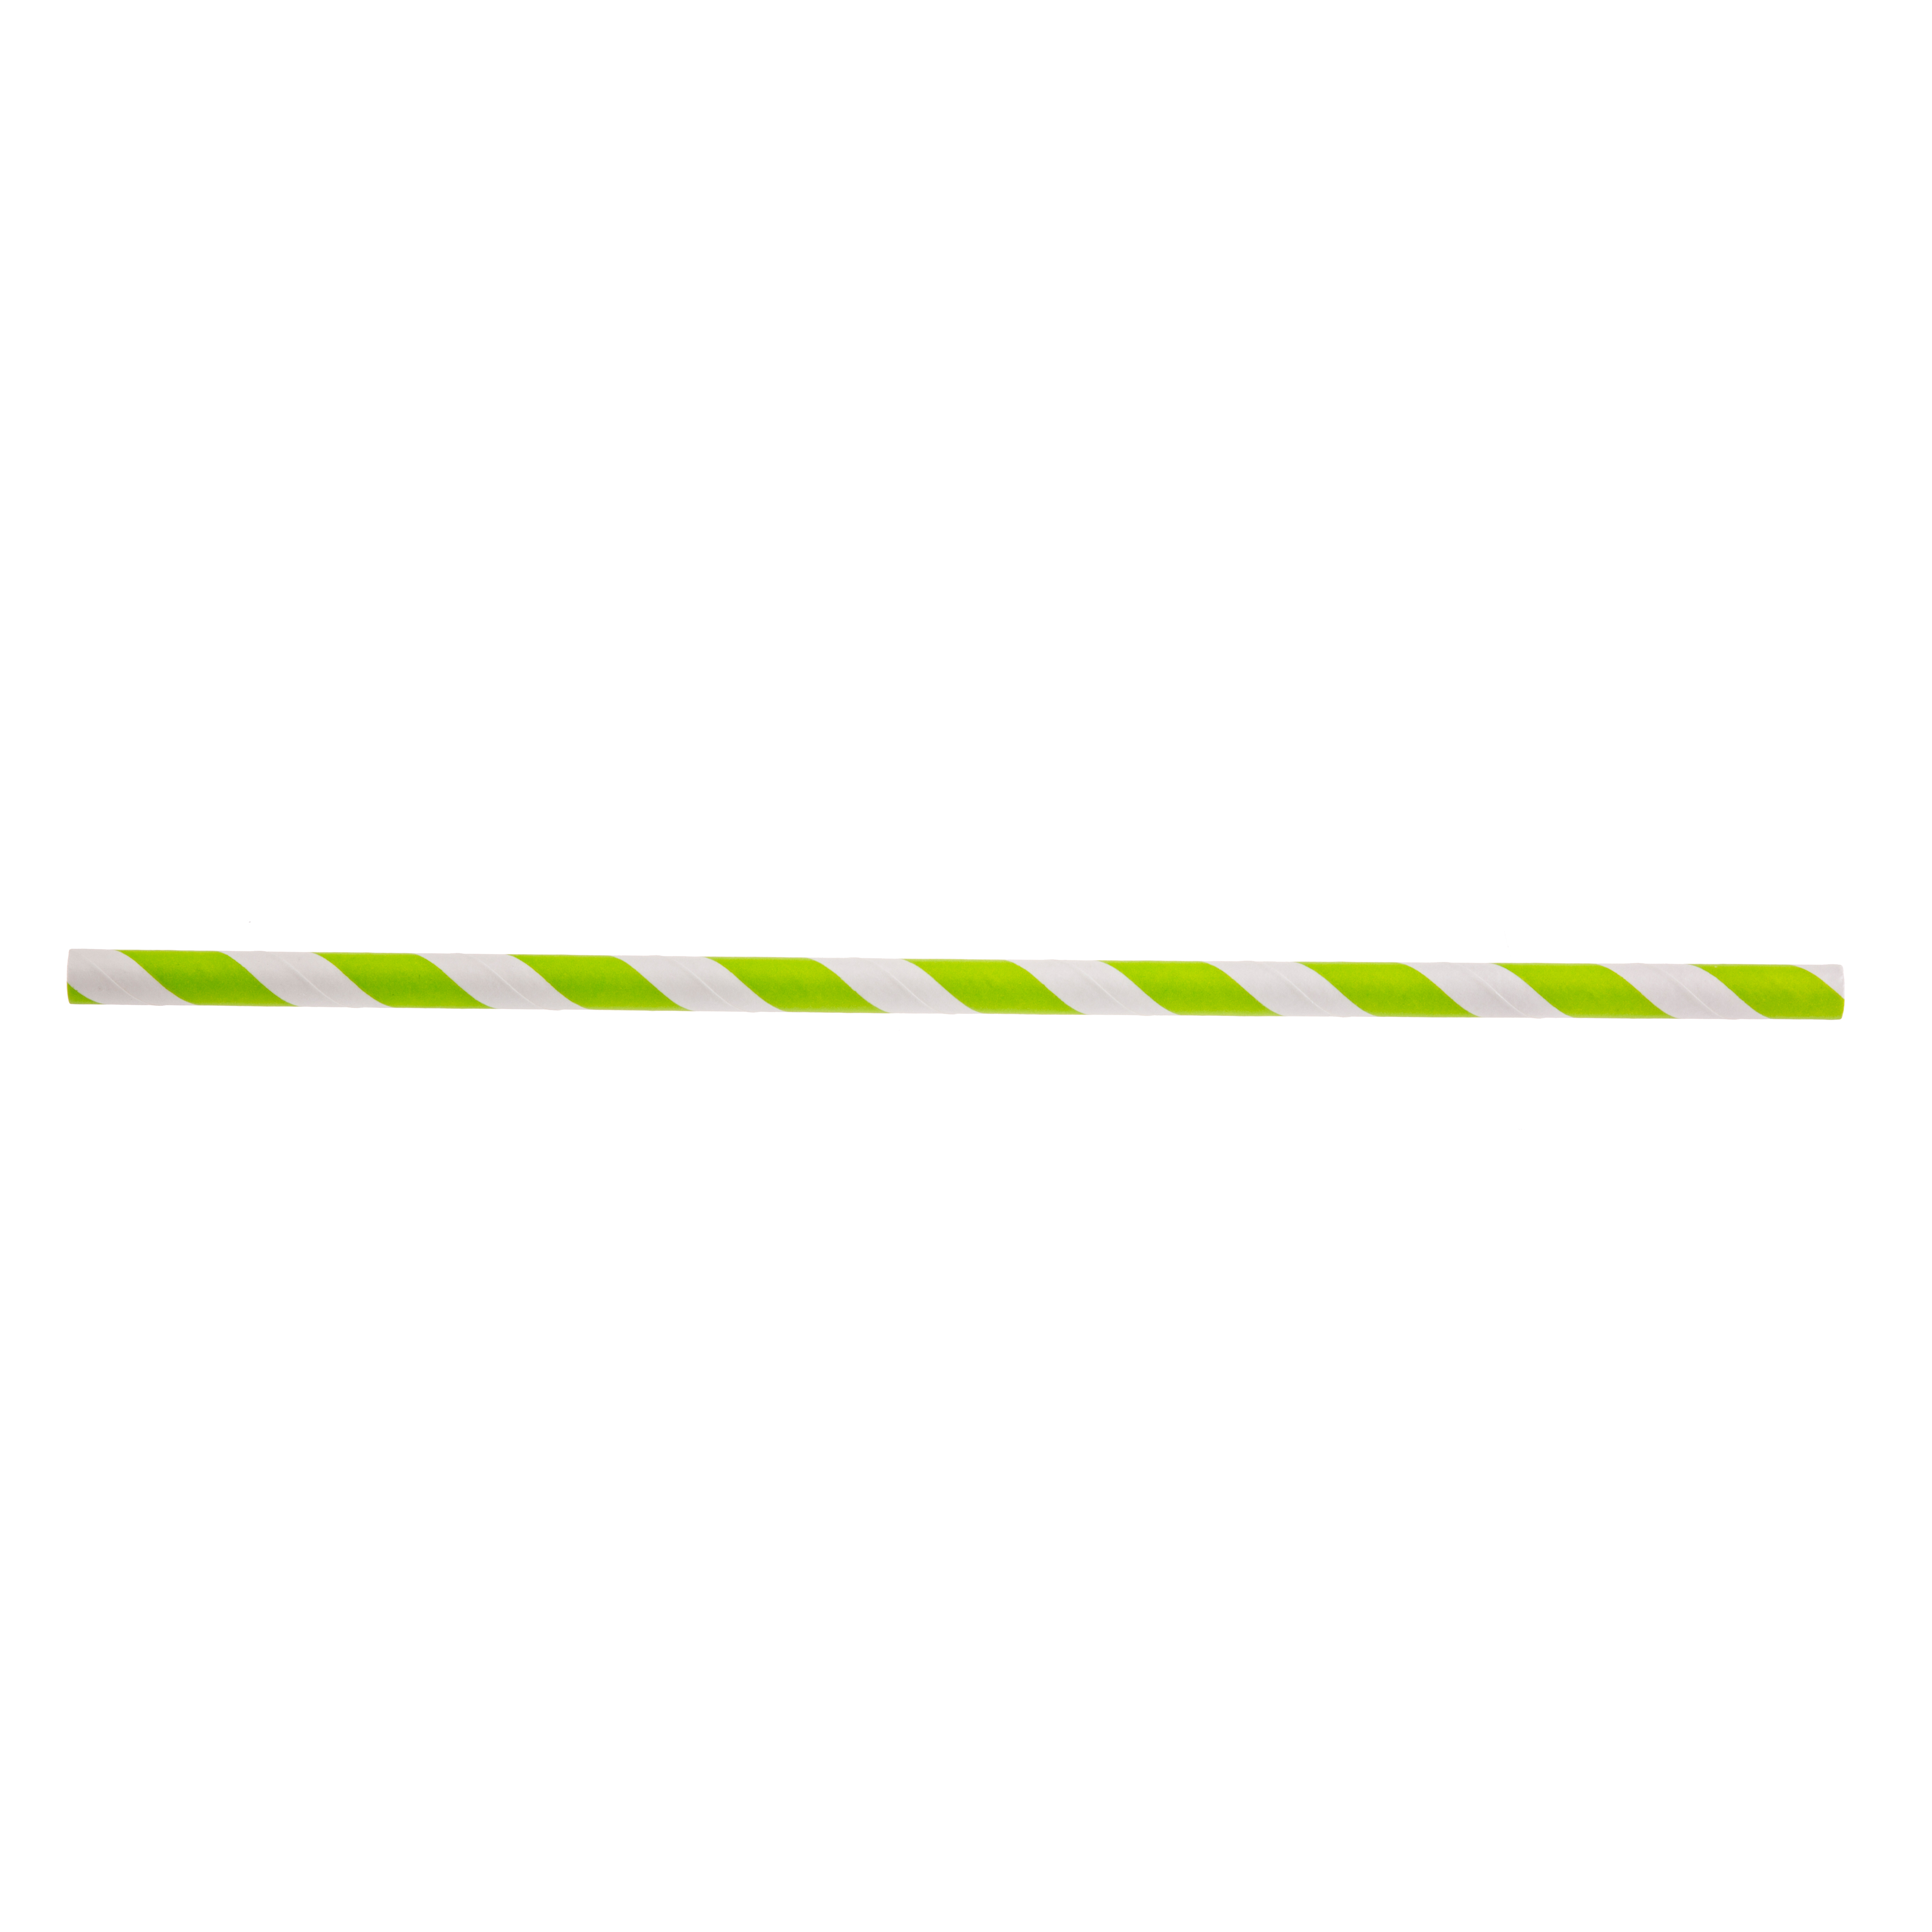 TableCraft Products 700118 straws